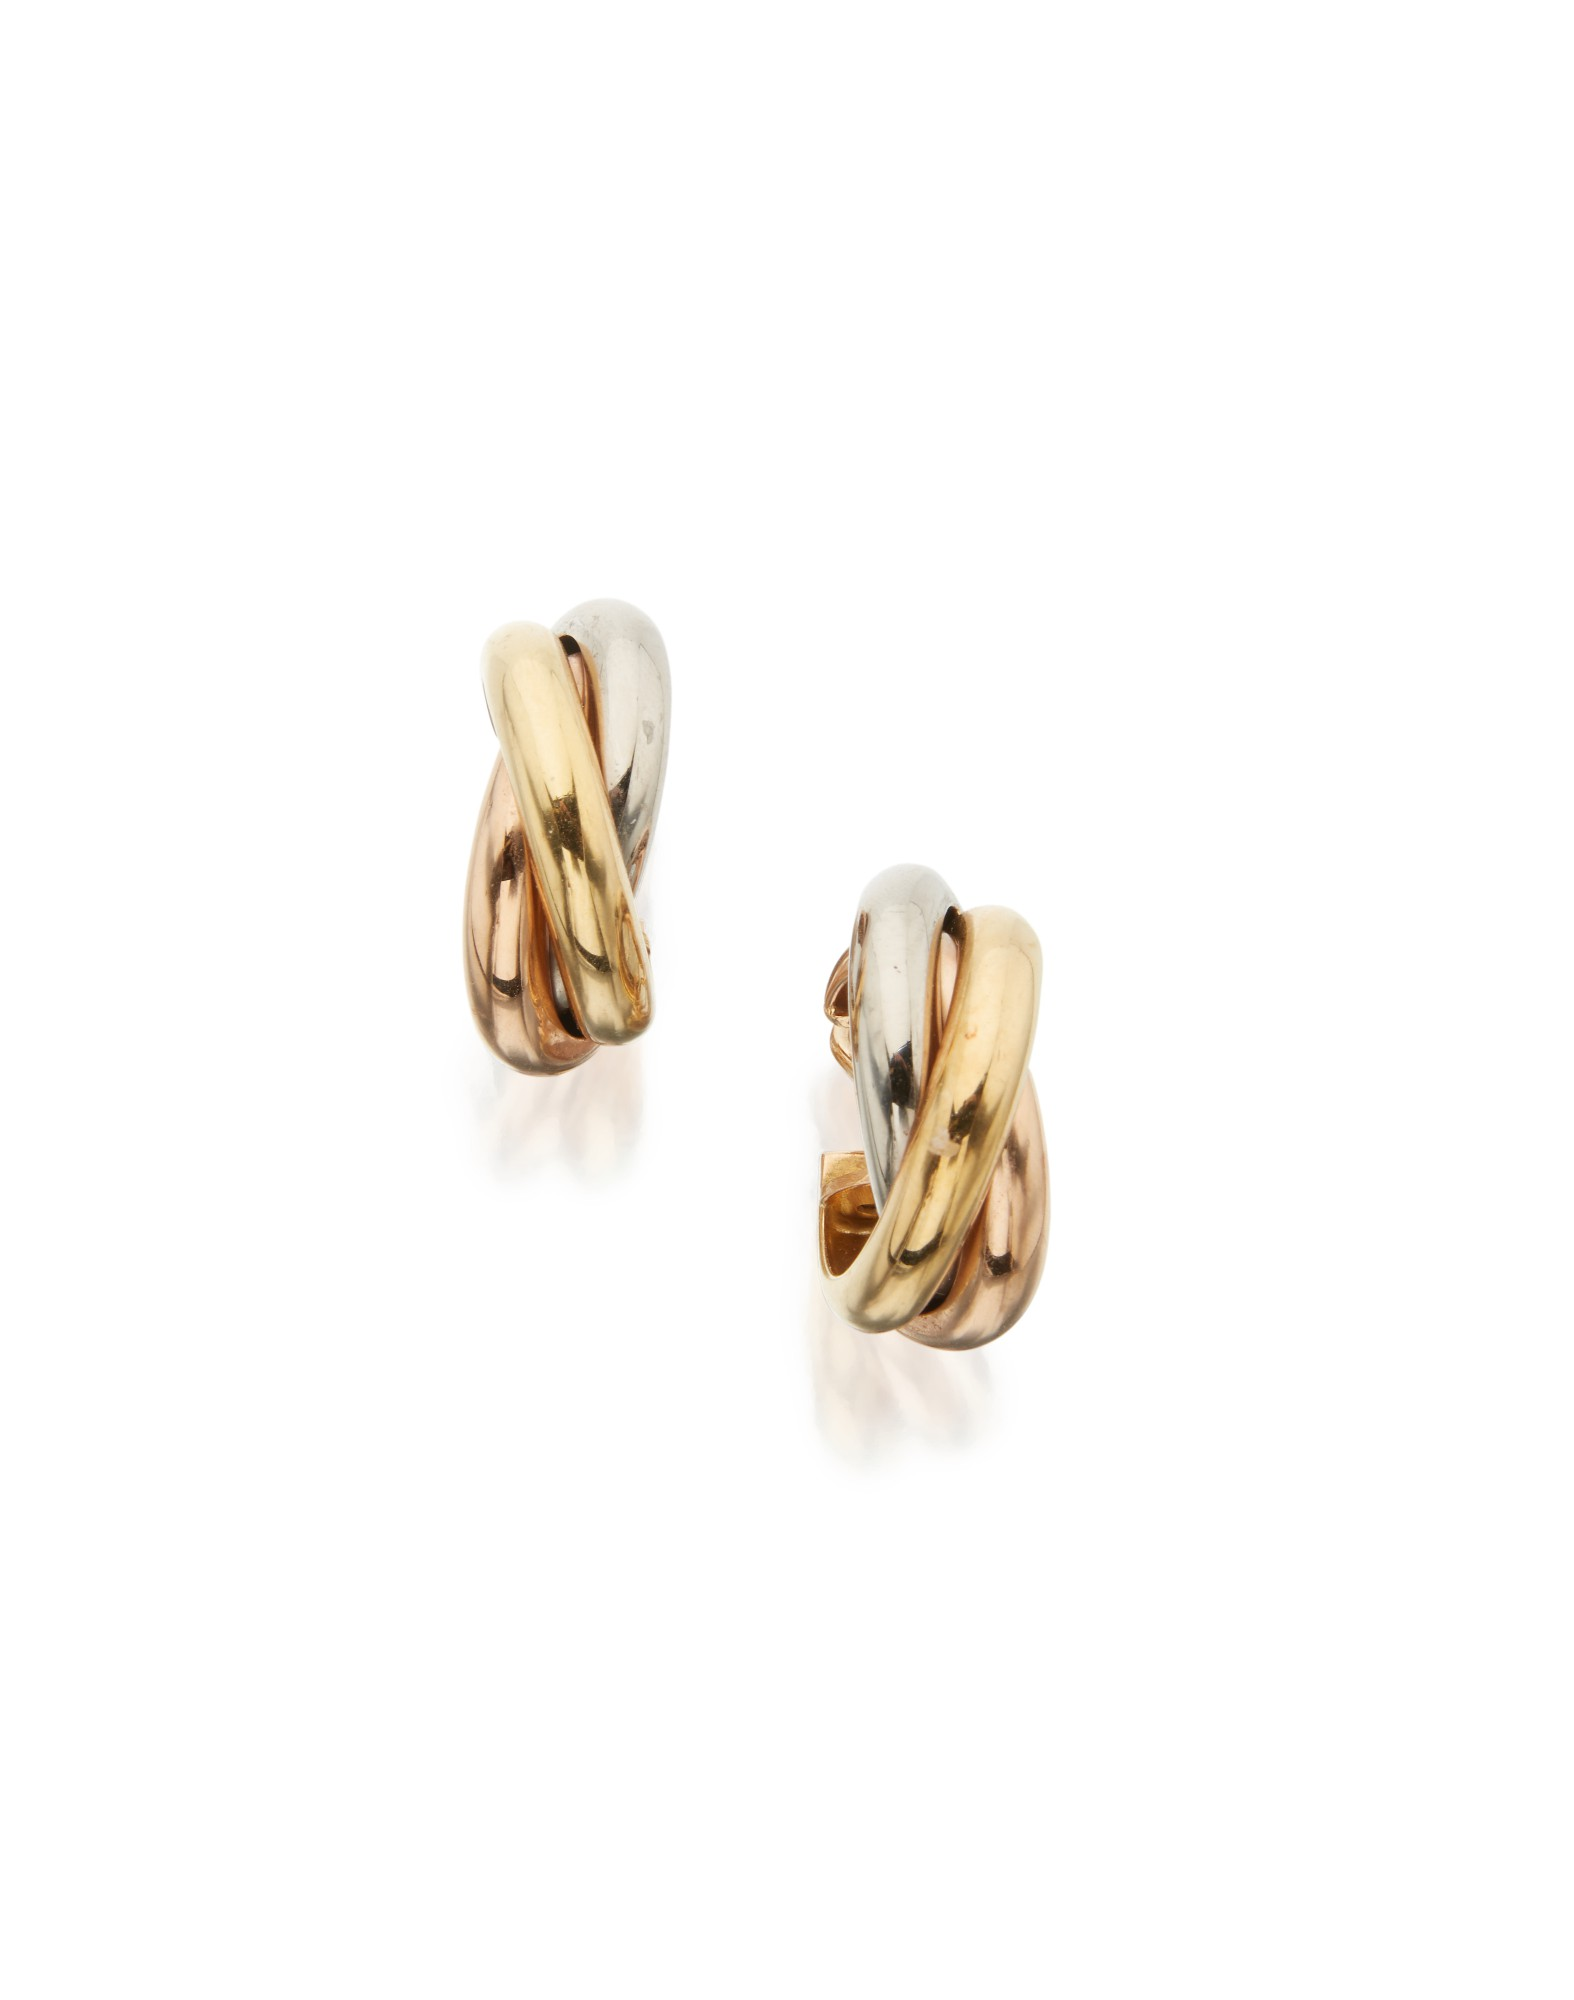 THREE-COLOR GOLD 'TRINITY' EARCLIPS, CARTIER, FRANCE